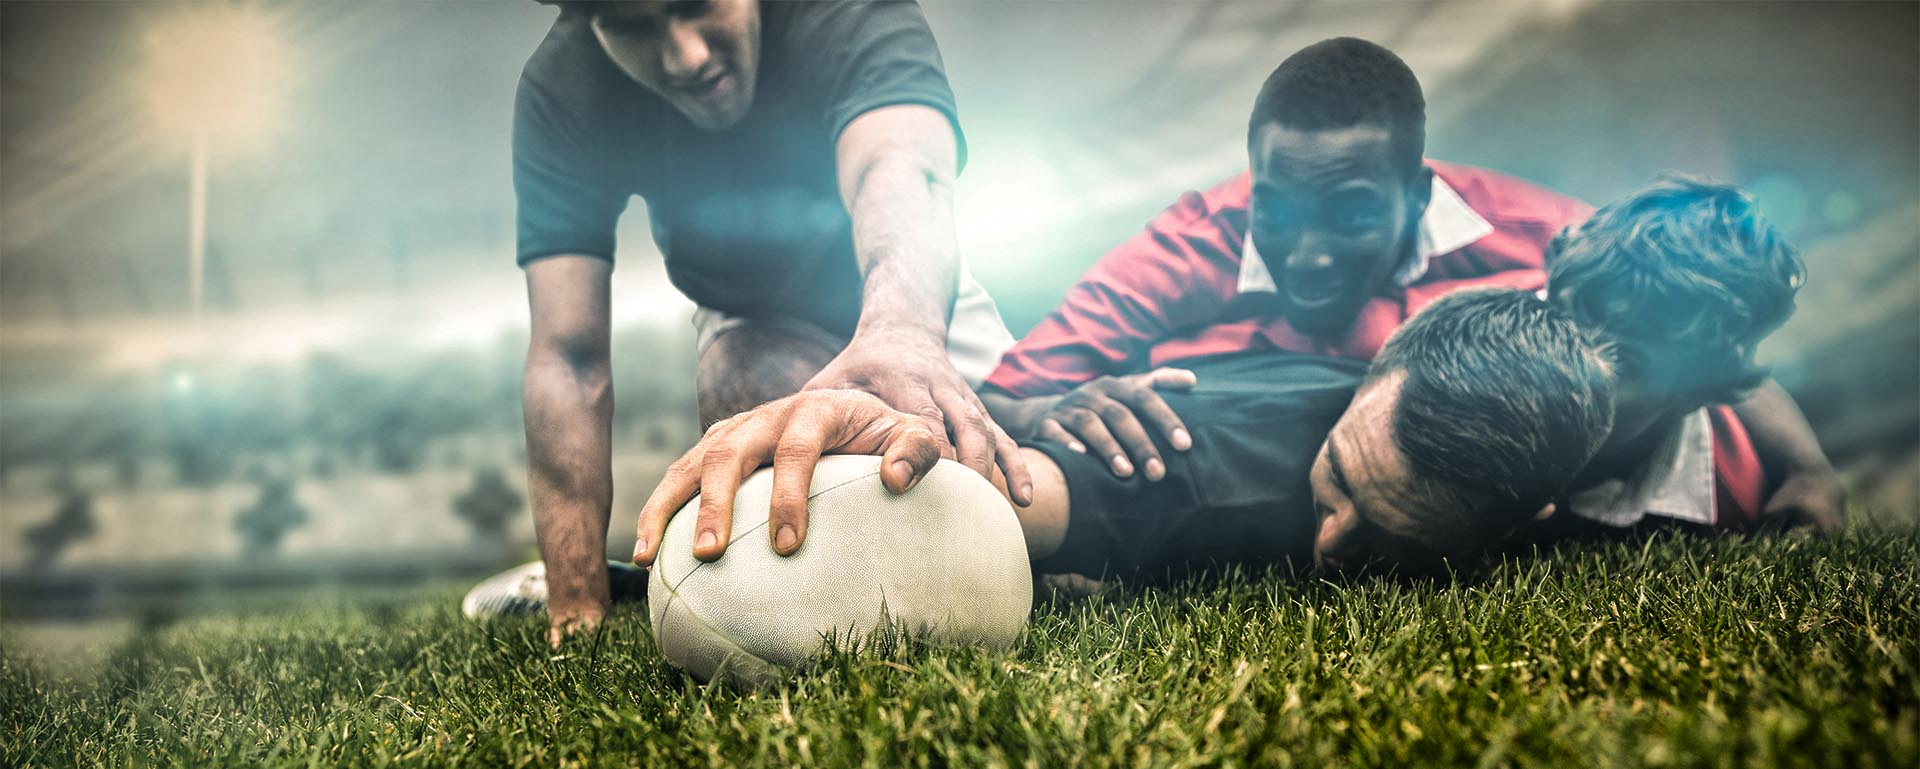 Super League – playoffy rugby